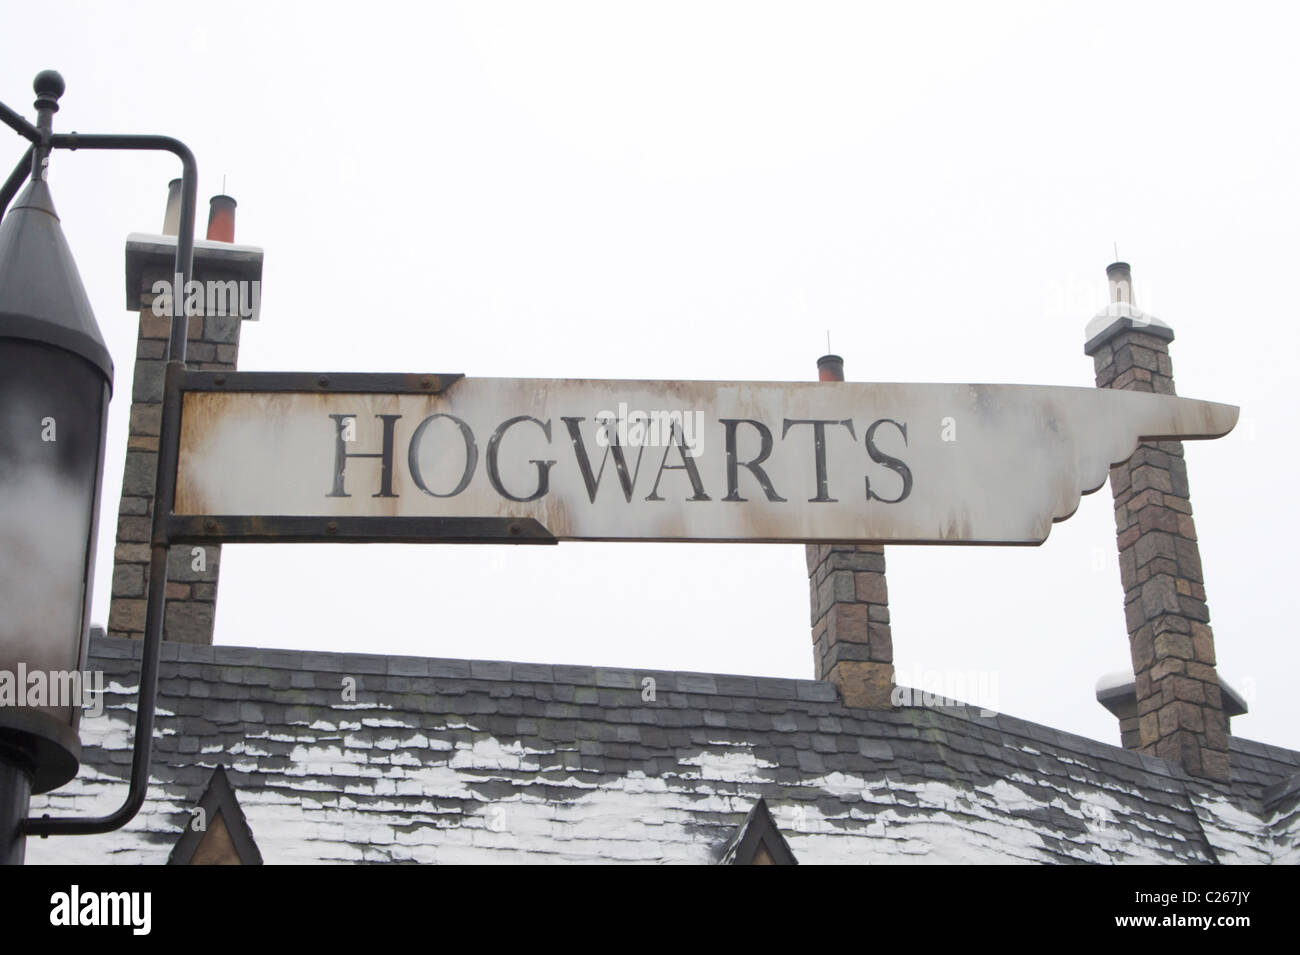 Hogwarts sign post at the Wizarding World of Harry Potter - Stock Image